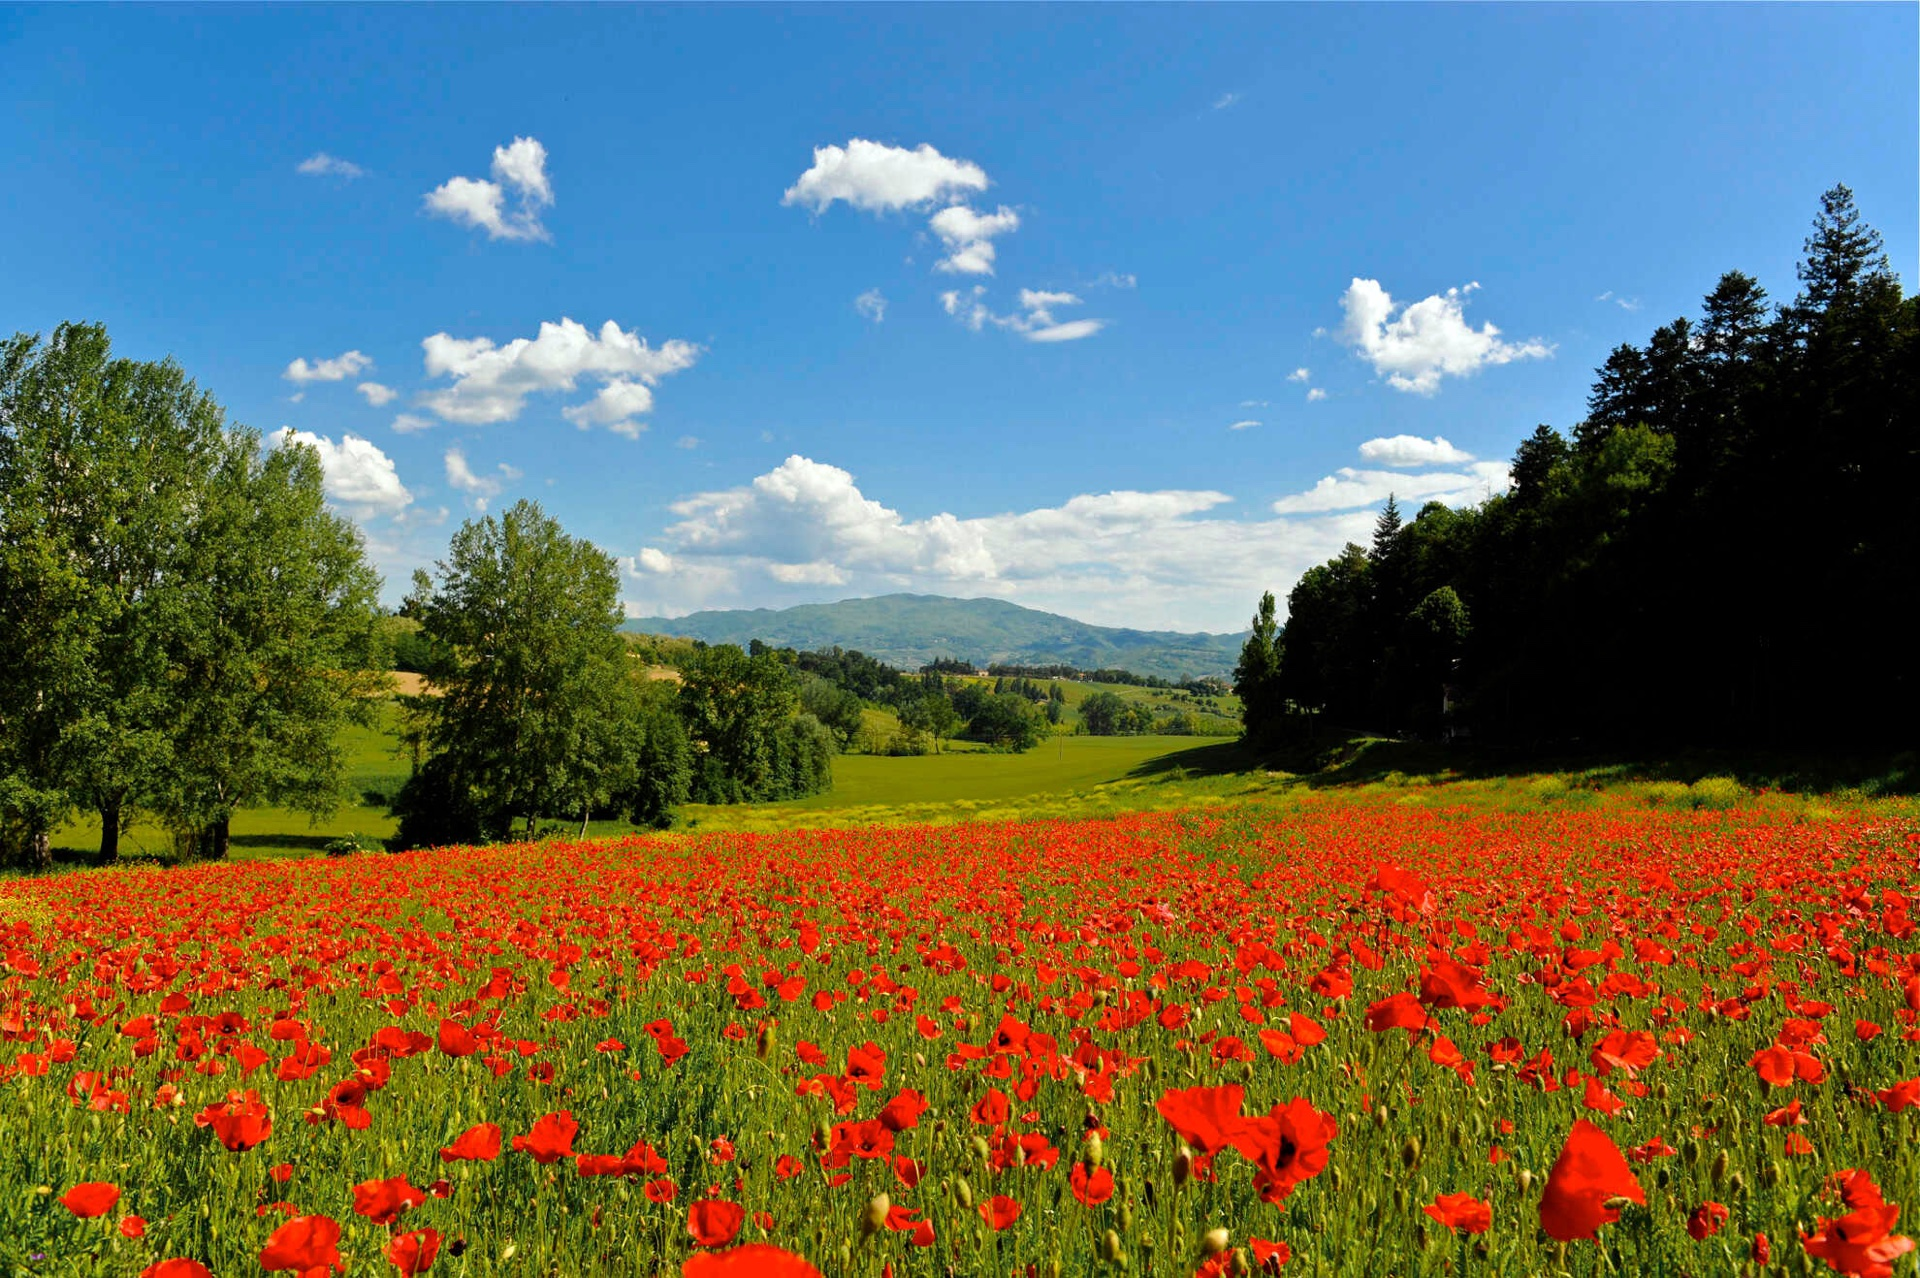 The beauty of nature, in the splendid backdrop of the Tuscan Appennines